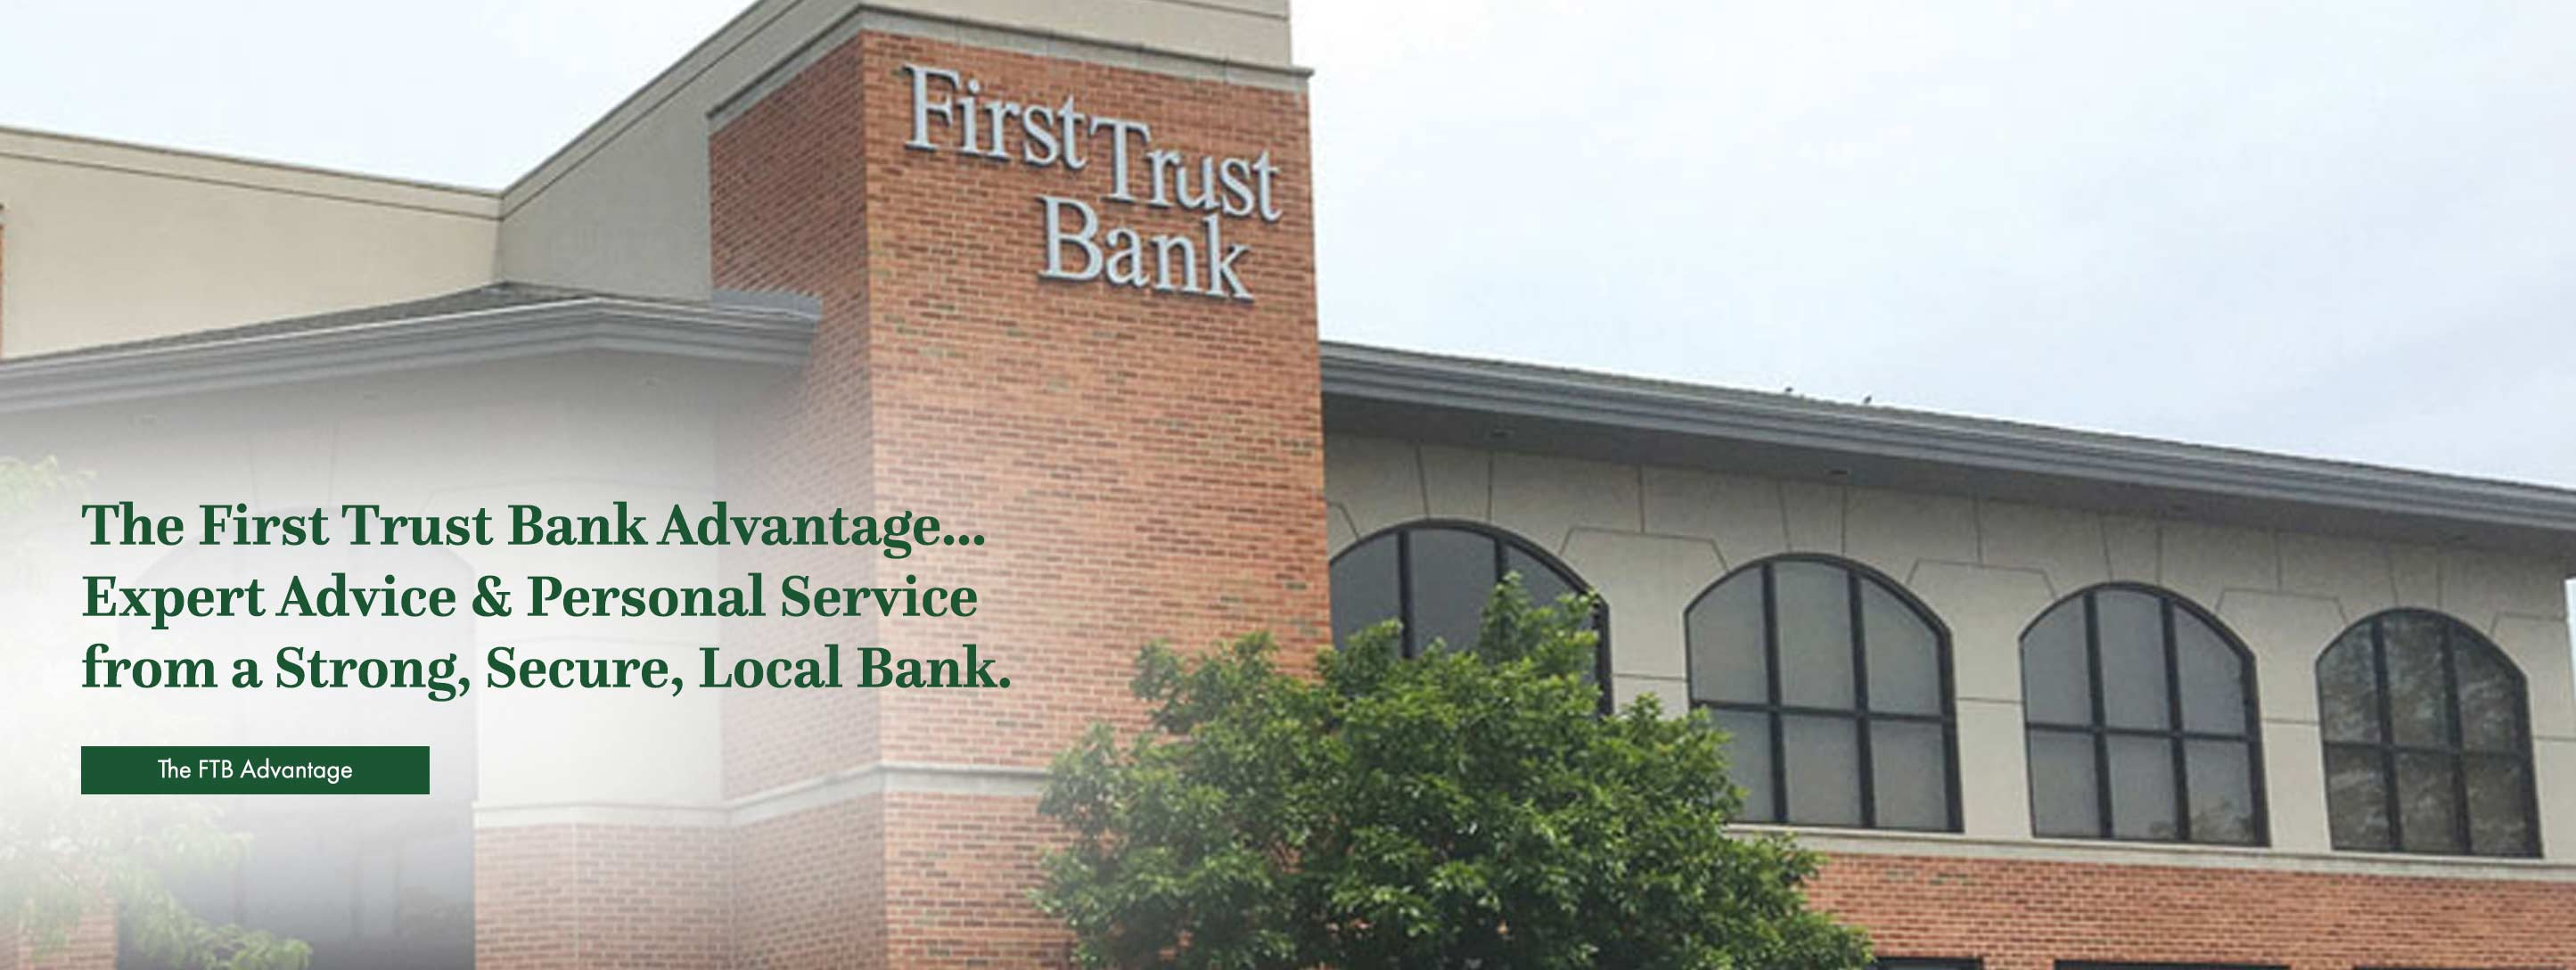 The First Trust Bank Advantage. Expert advice and personal service from a strong, secure, local bank. The FTB Advantage